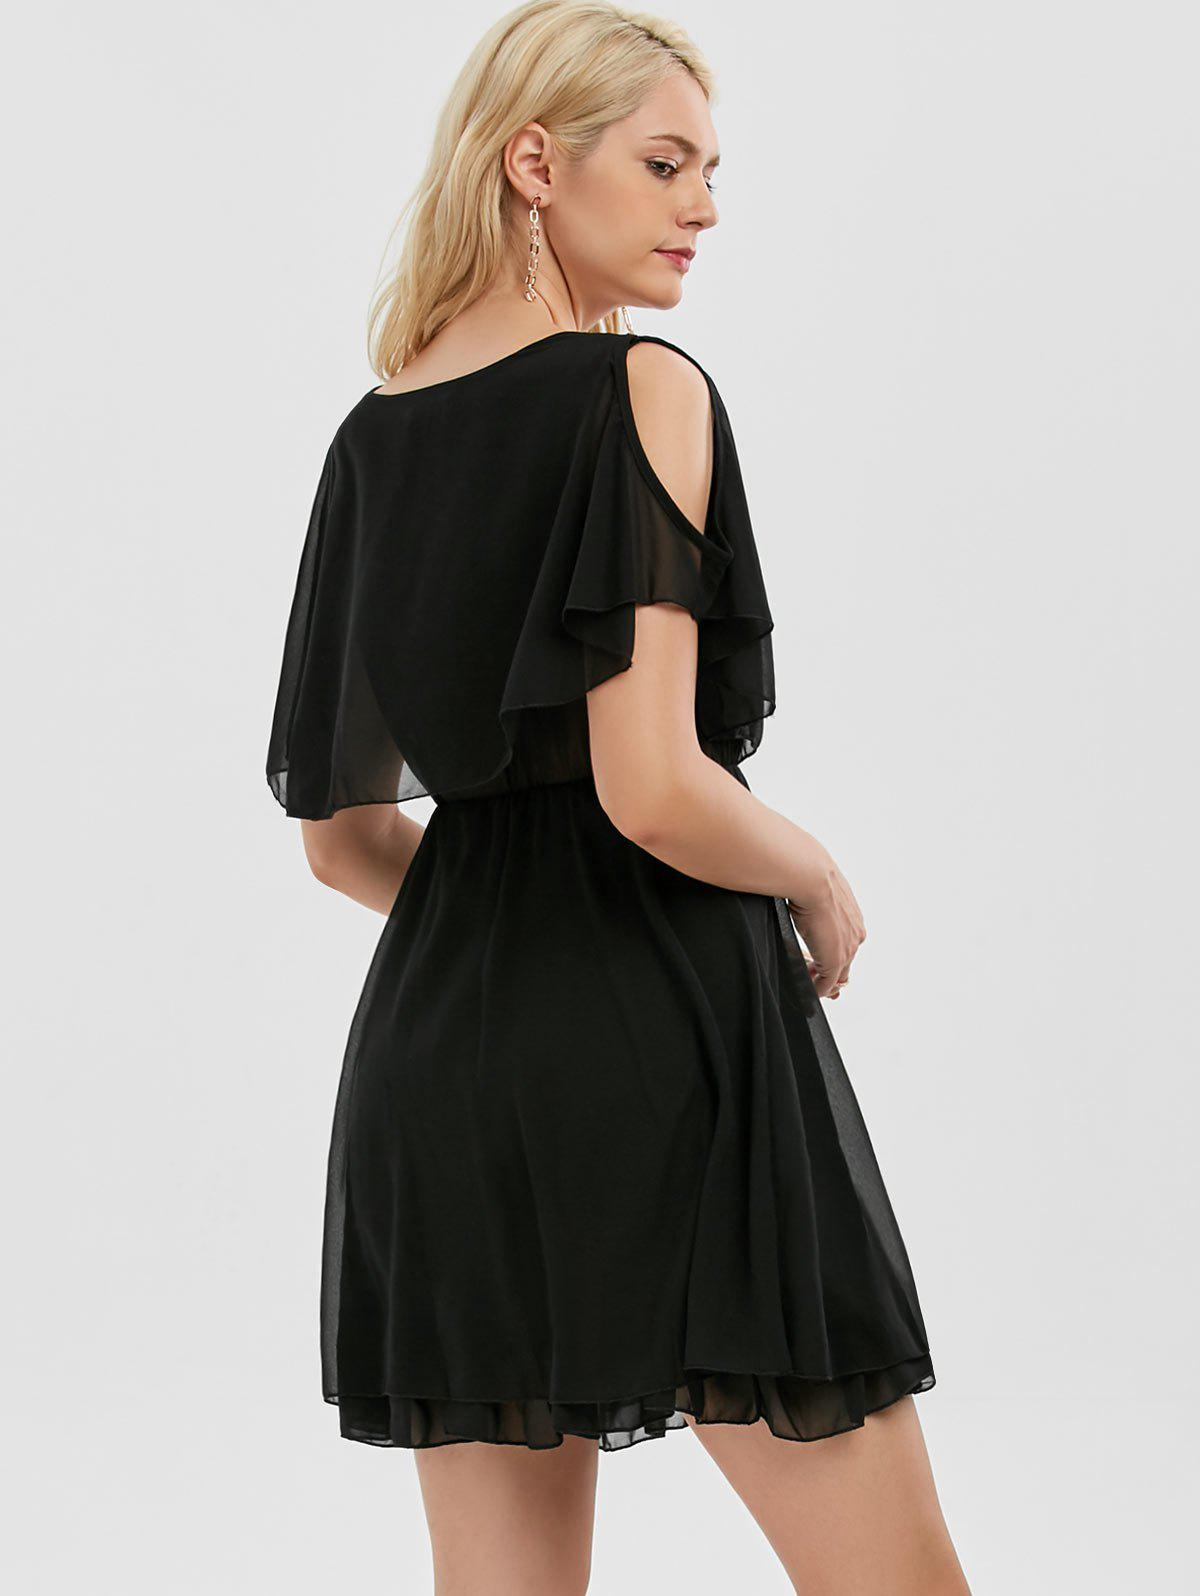 Ruffle Chiffon Cold Shoulder Mini Dress - BLACK XL